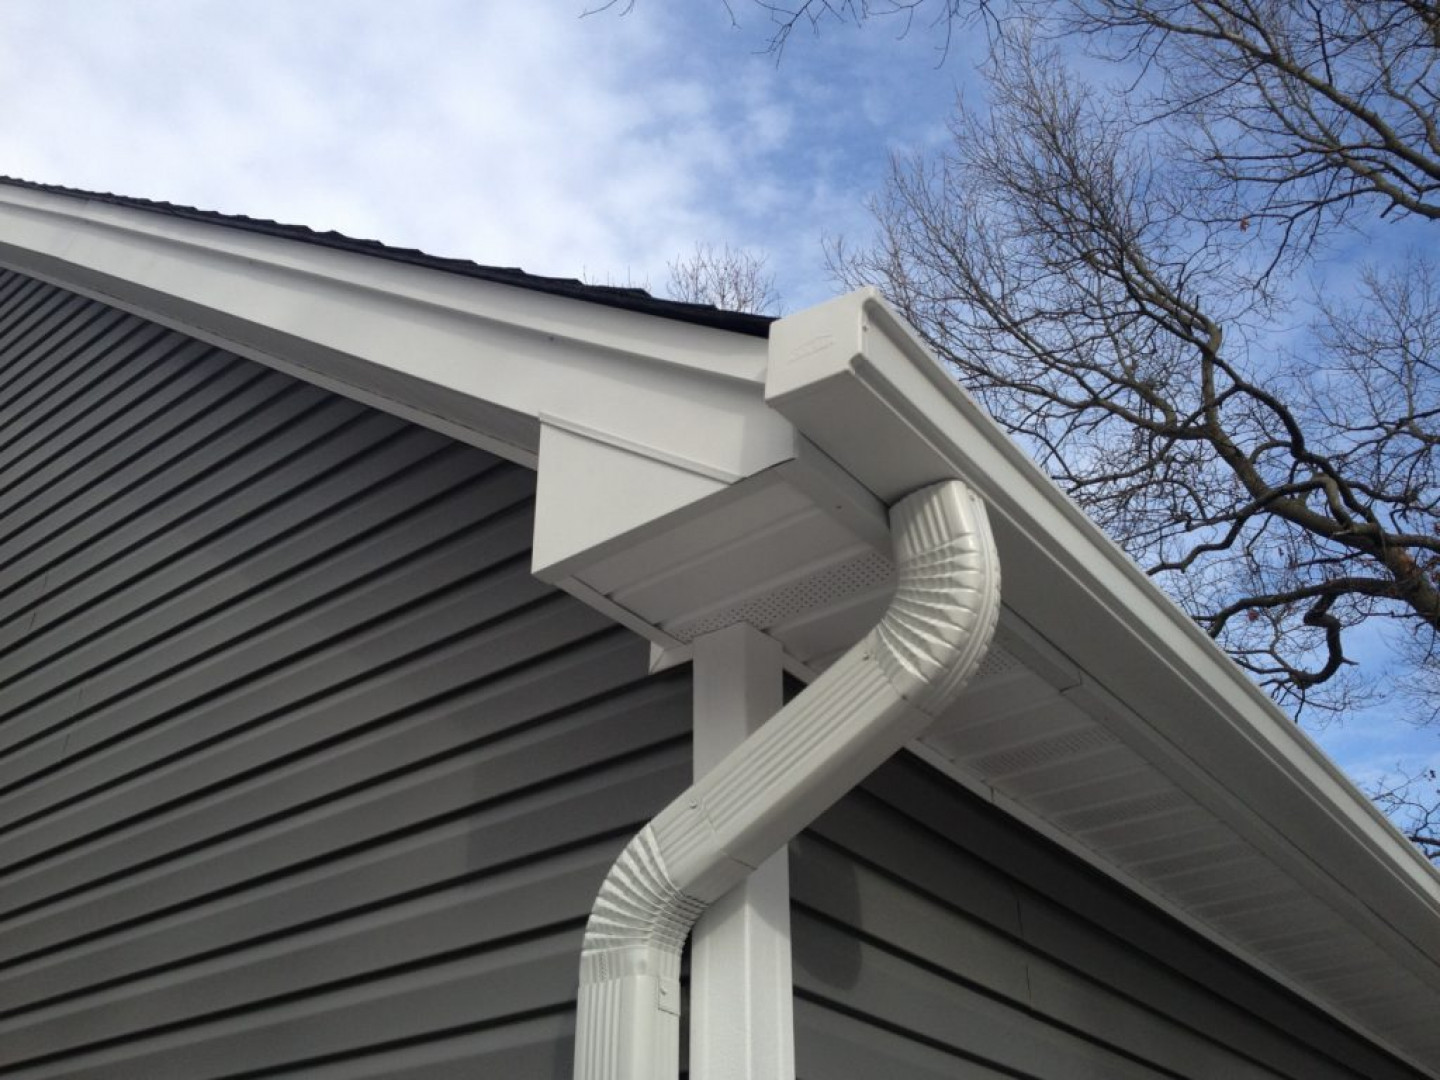 Why is a well-designed gutter system so important?